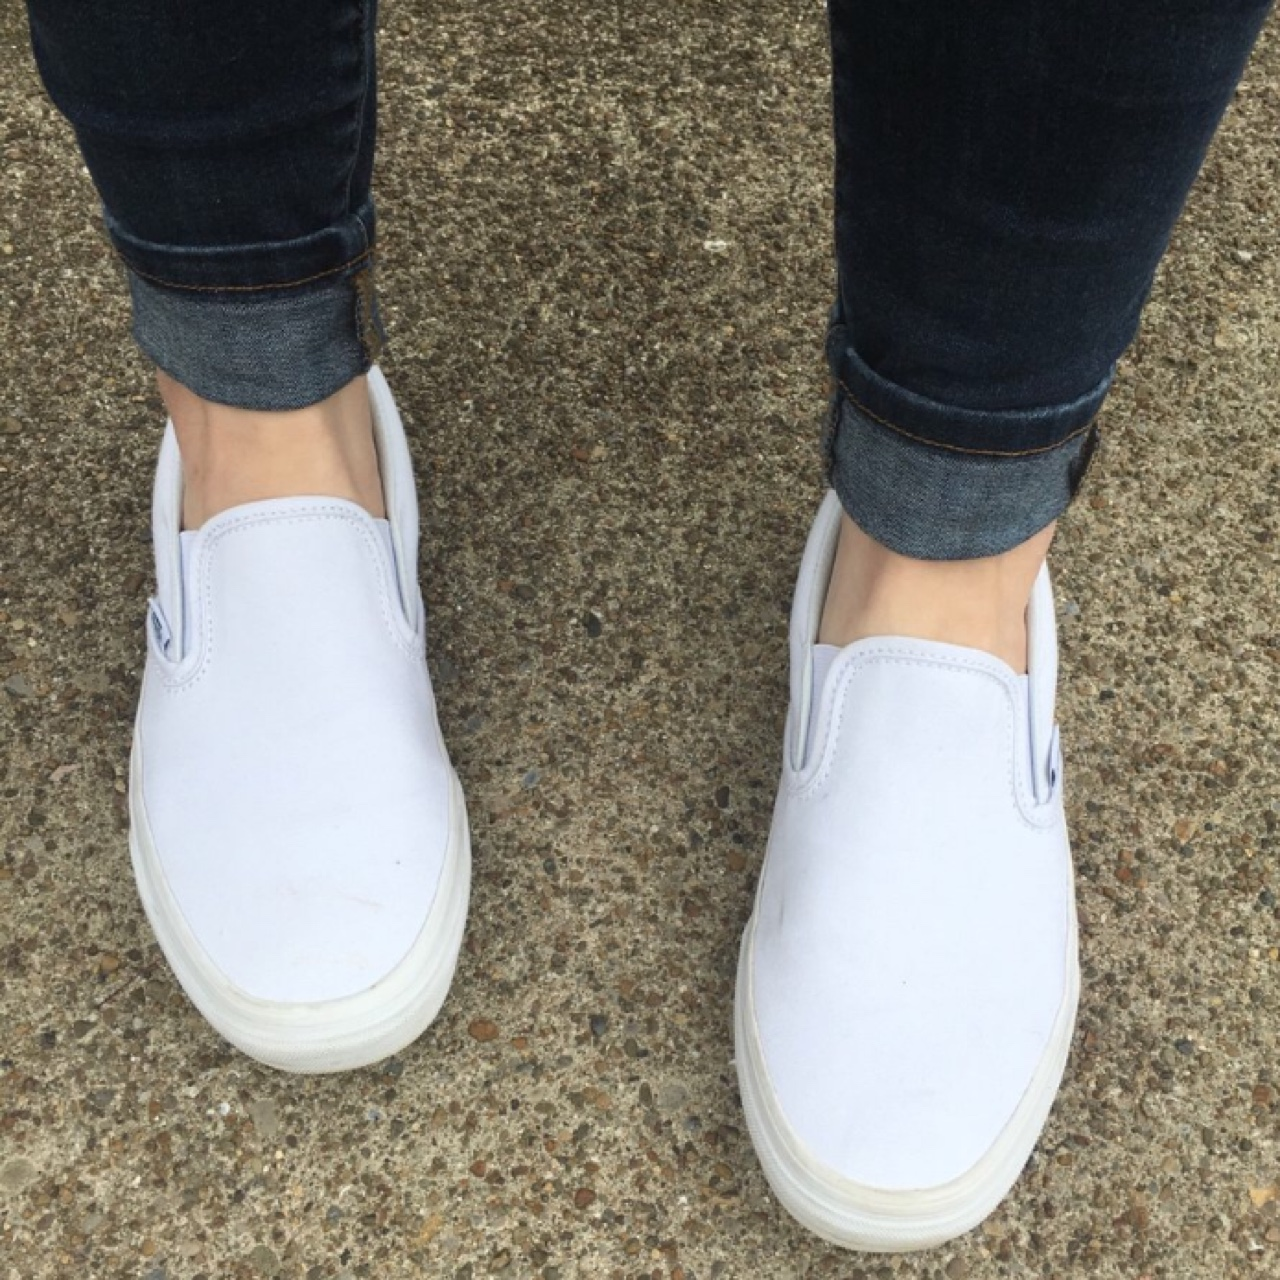 ALL WHITE VANS SLIP ONS - these are